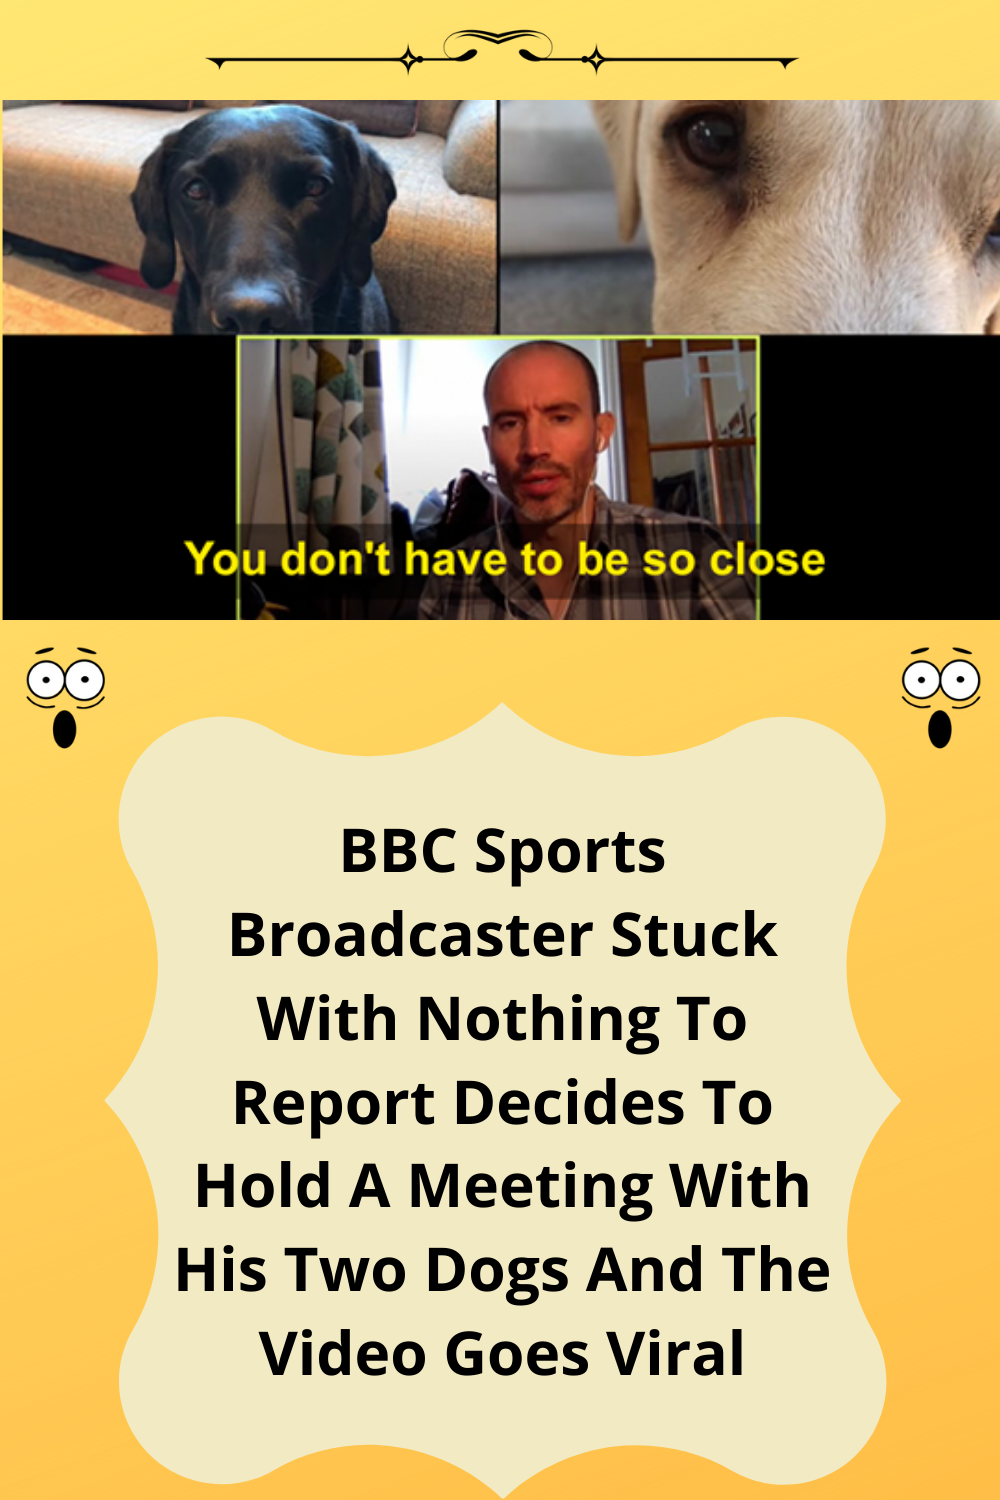 BBC Sports Broadcaster Stuck With Nothing To Report